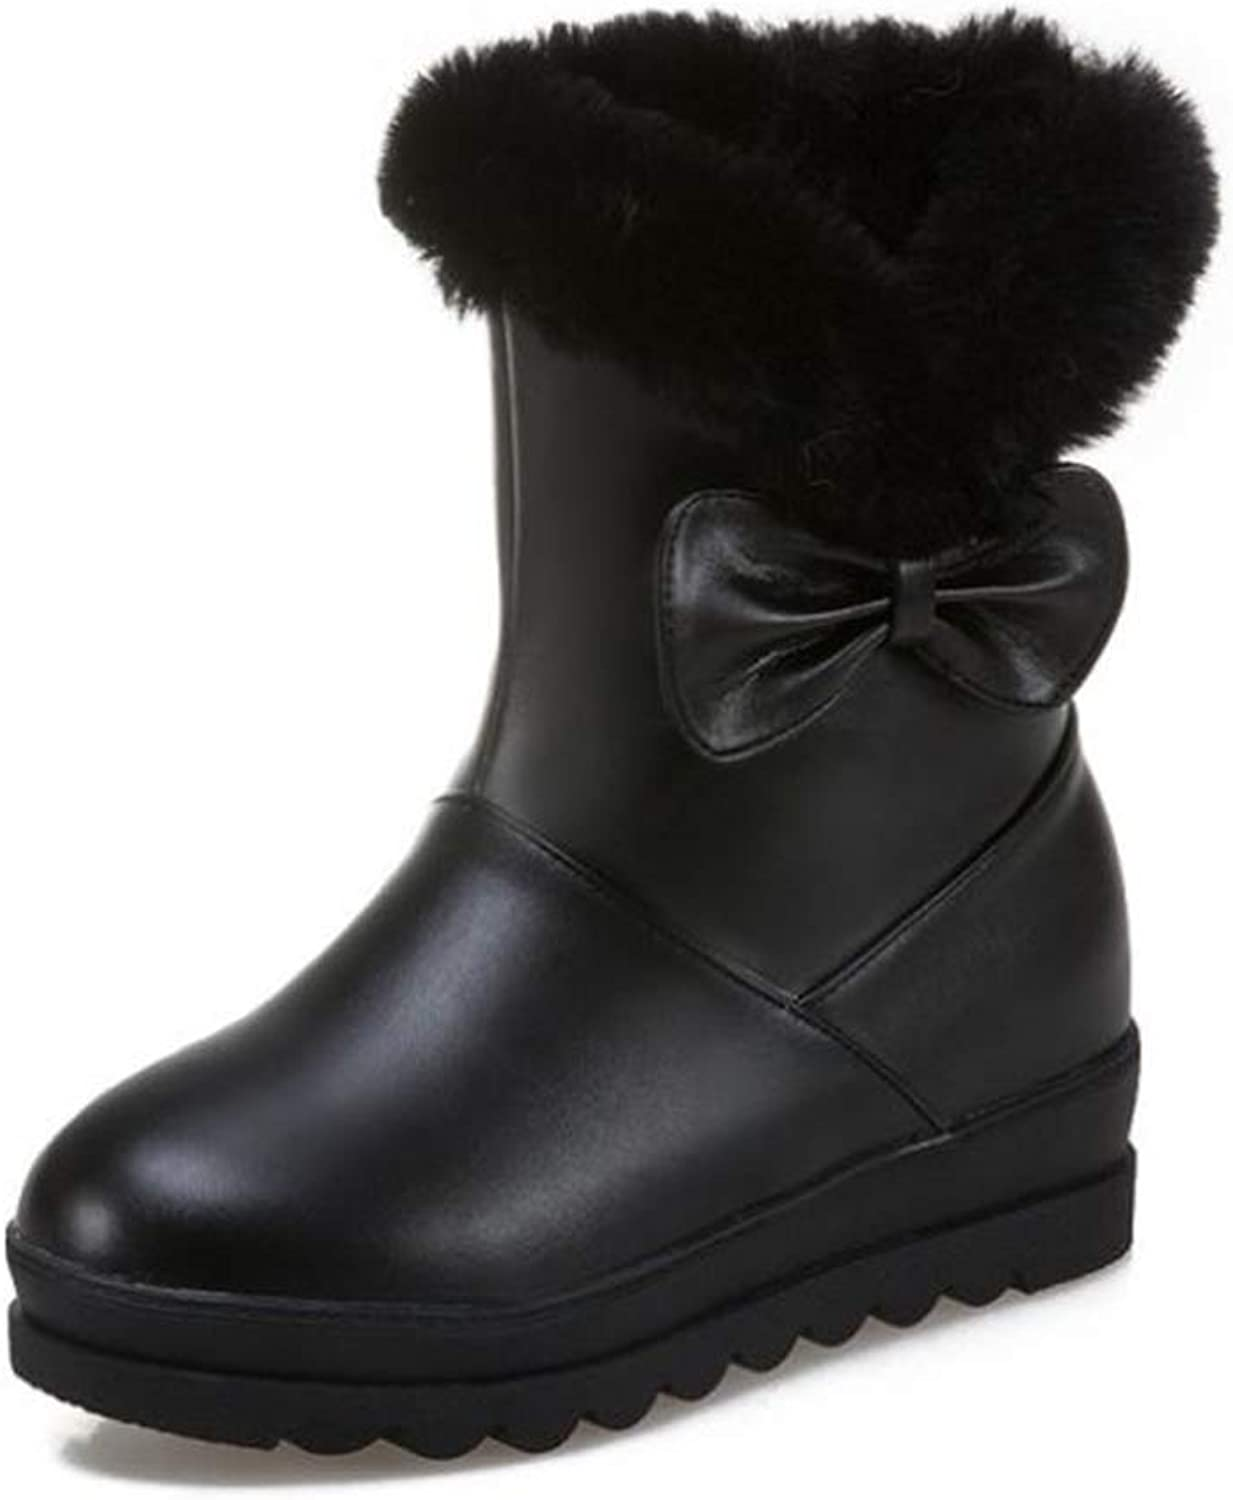 Fancyww Women's Platform Snow Boots Cute Round Toe with Bow Thick Boots